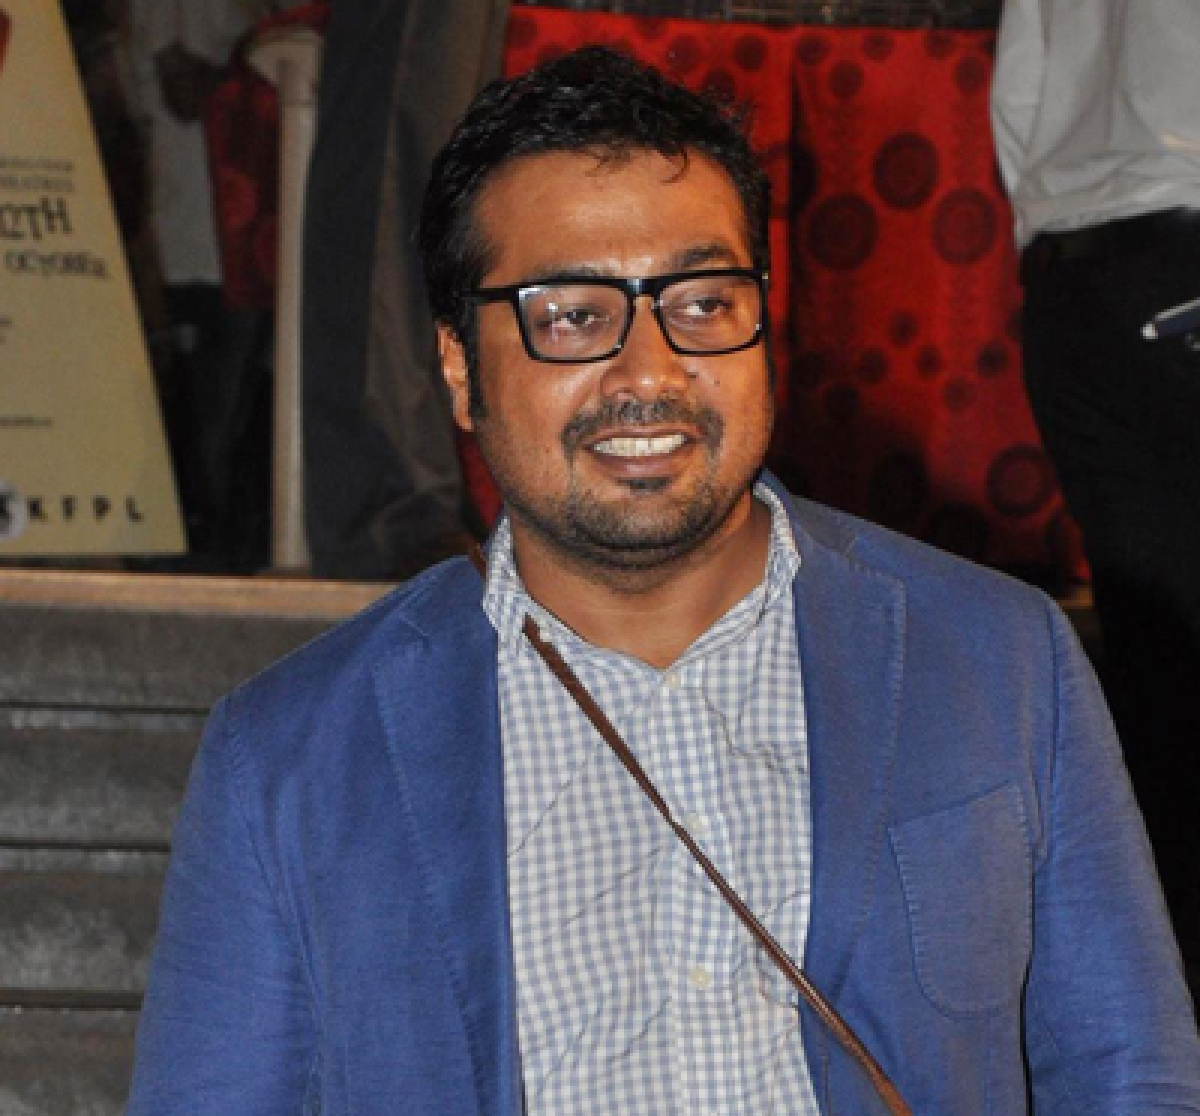 Anurag's date with film heritage